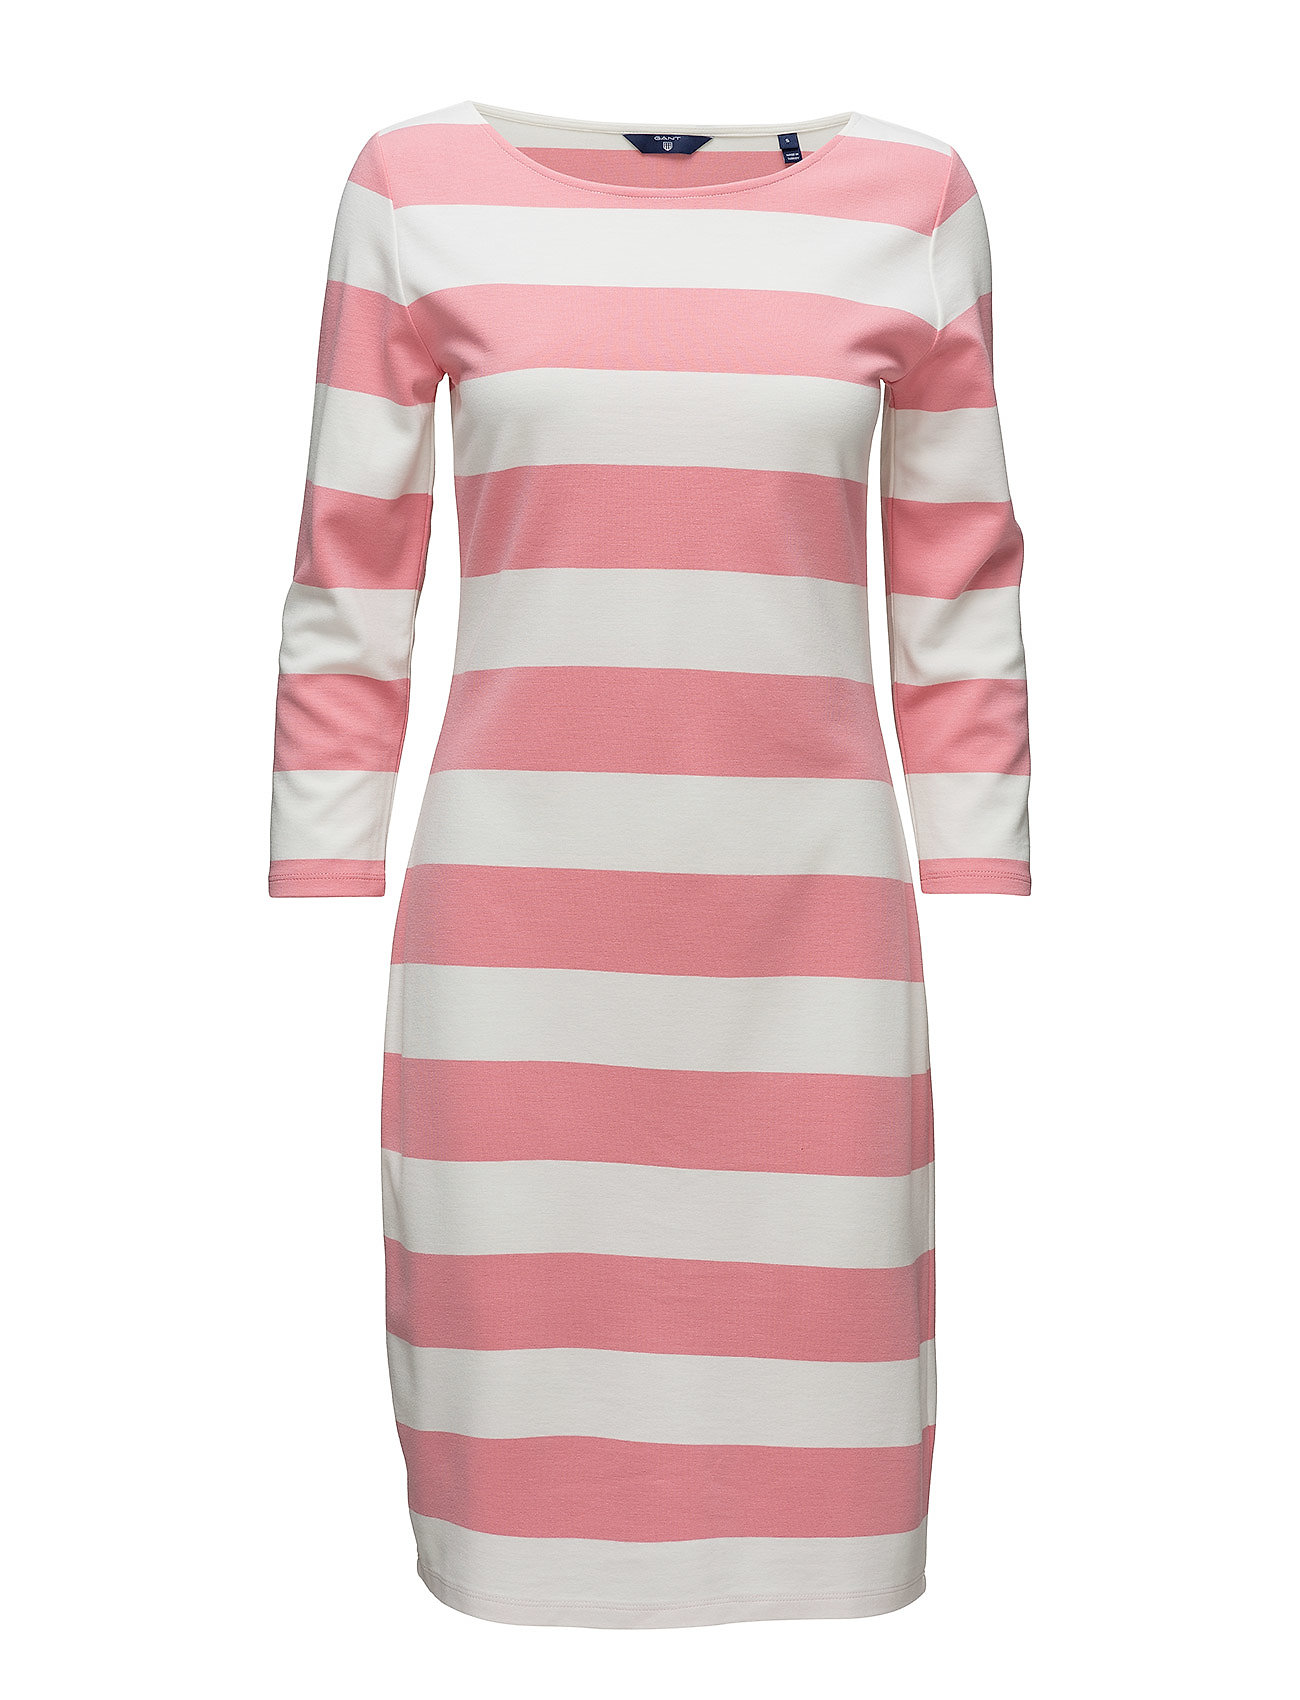 GANT O1. BARSTRIPED SHIFT DRESS